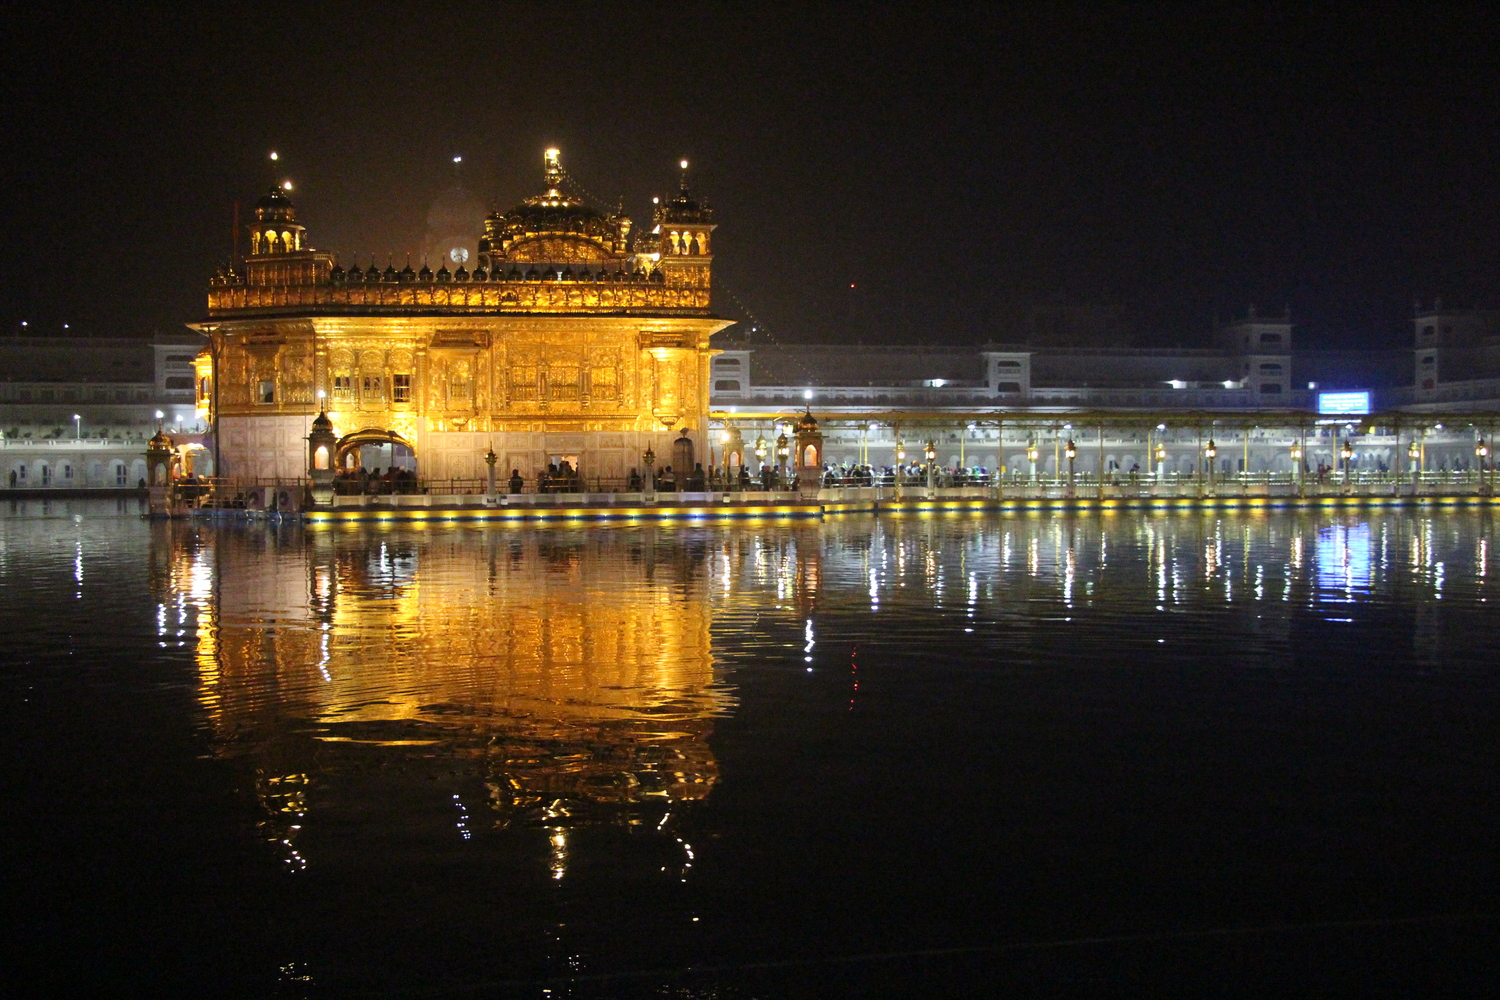 The Golden Temple Part 3: Martyrs and Militarism